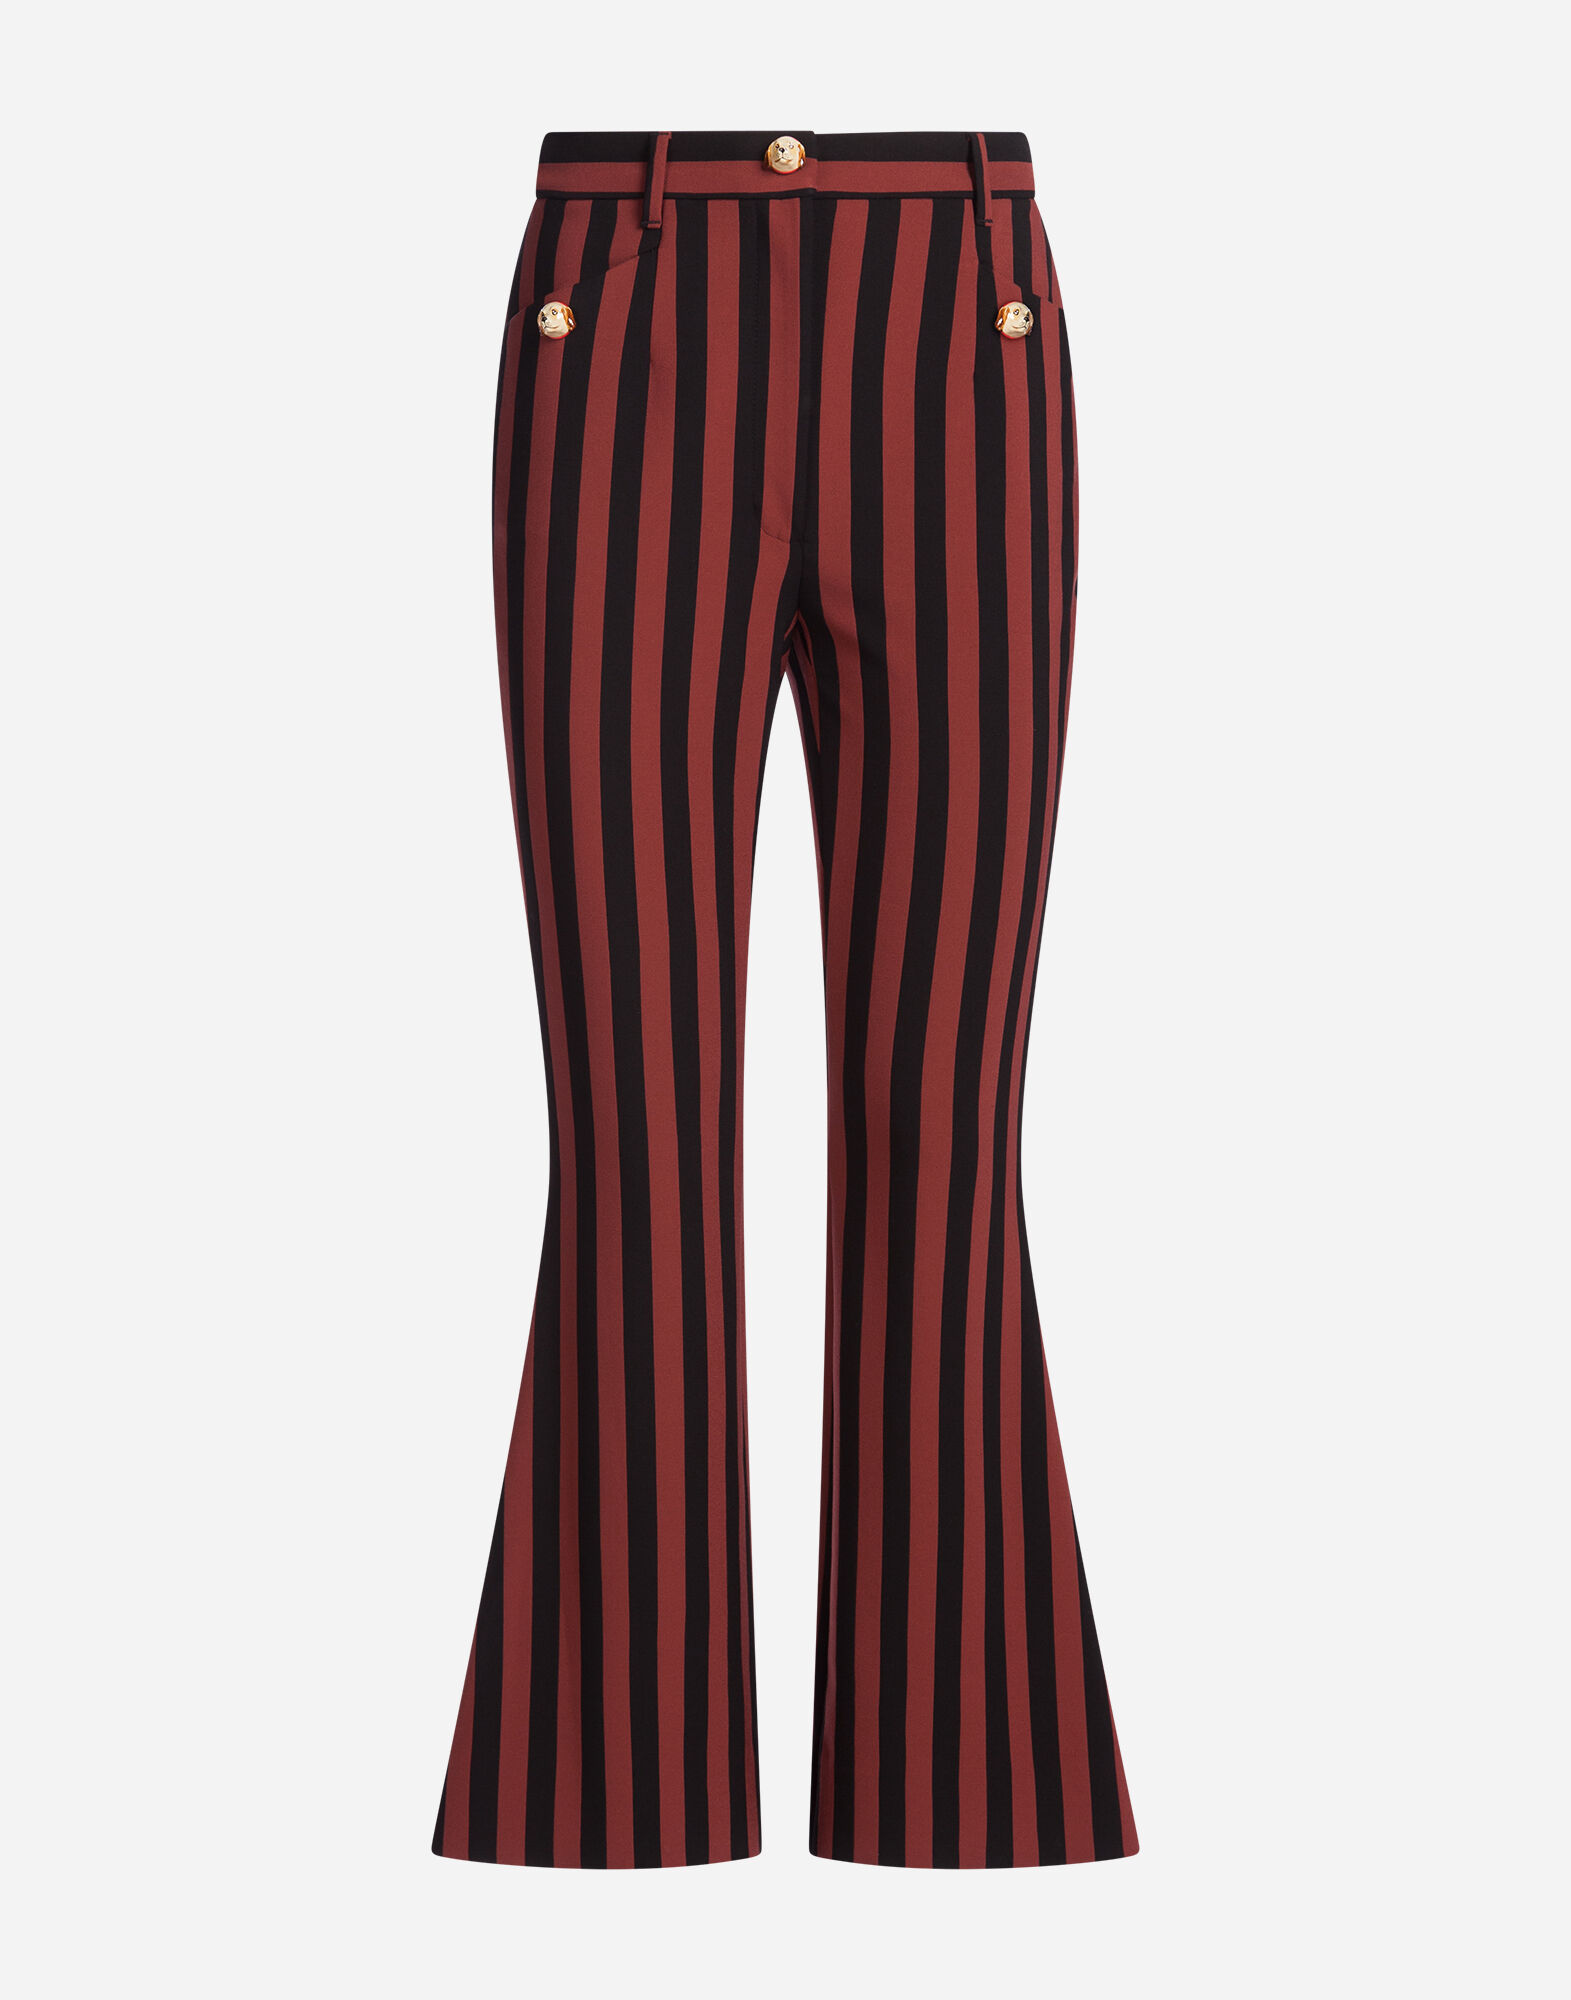 STRIPED PANTS WITH APPLIQUÉS